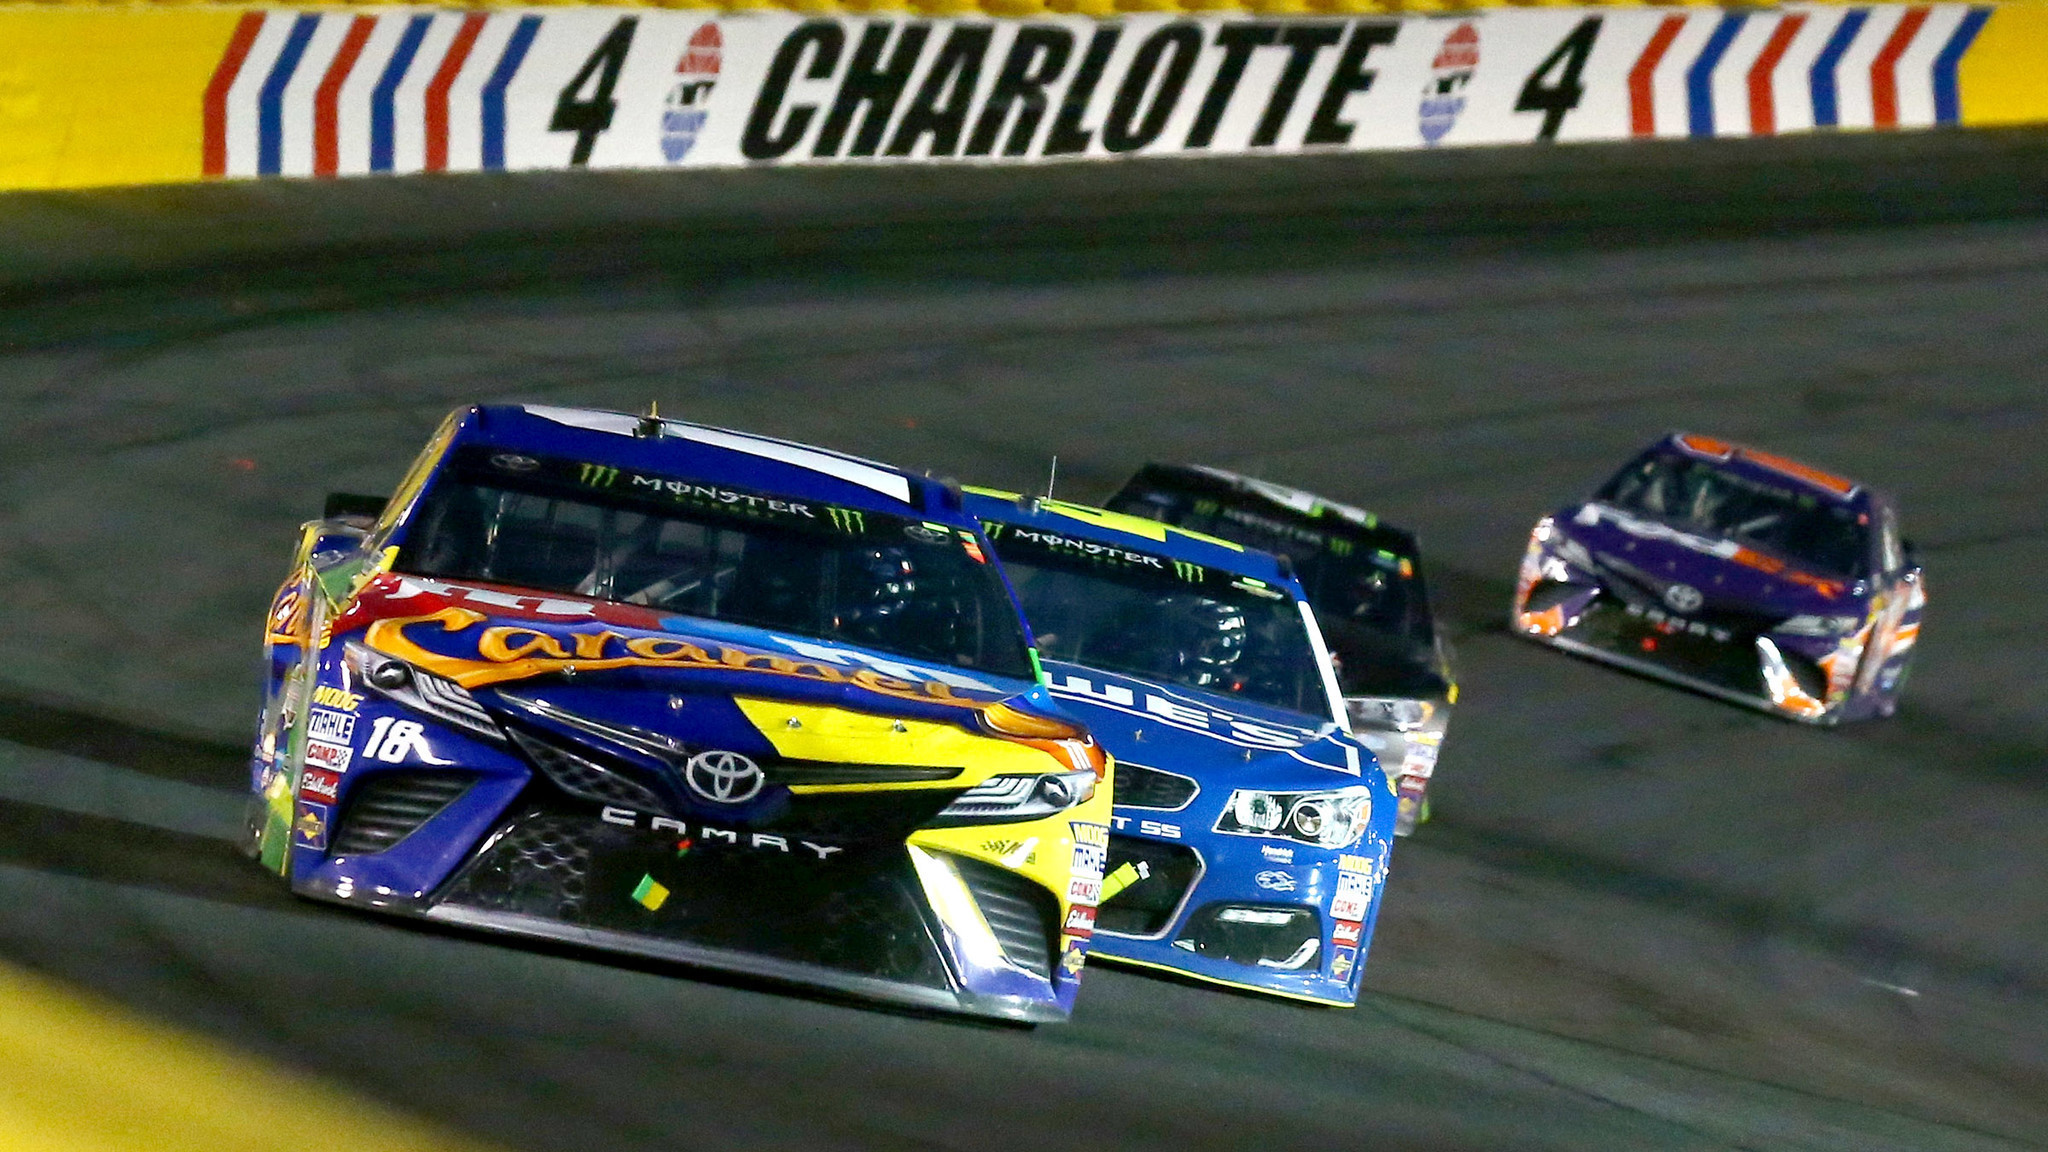 Kyle busch wins nascar s all star race at charlotte for the first time la times